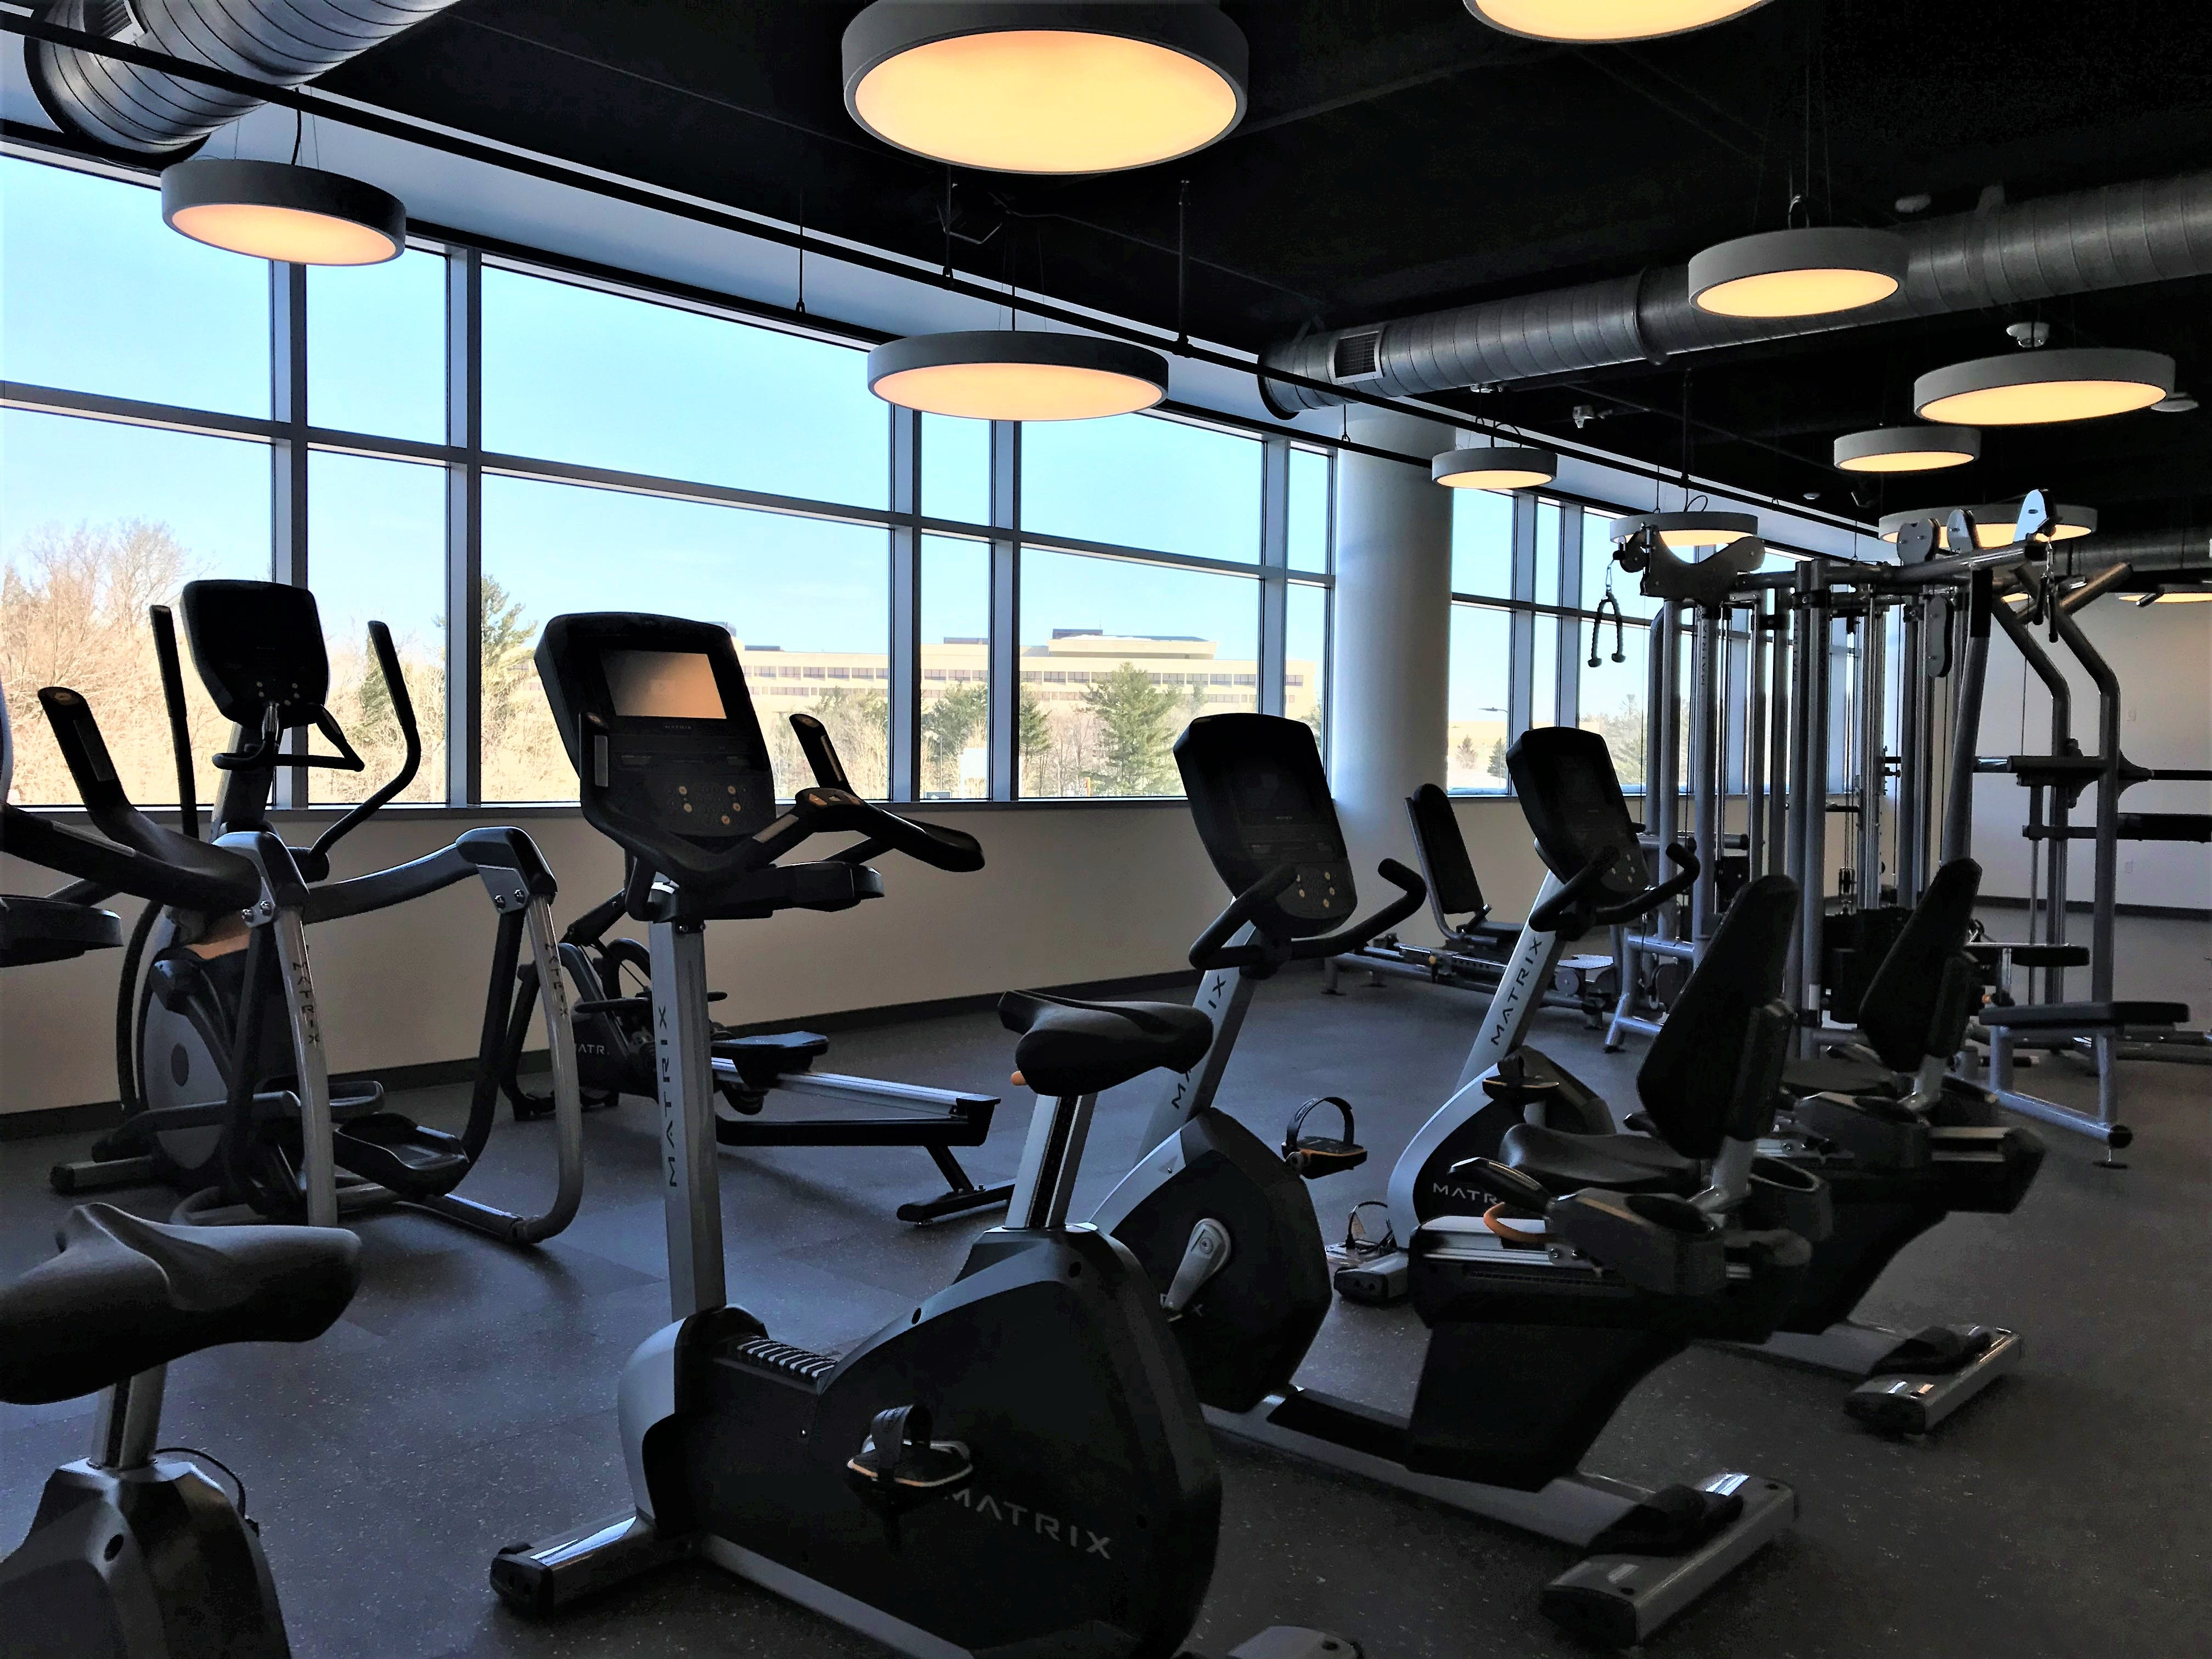 The workout room in the new Sentry Insurance building in Stevens Point